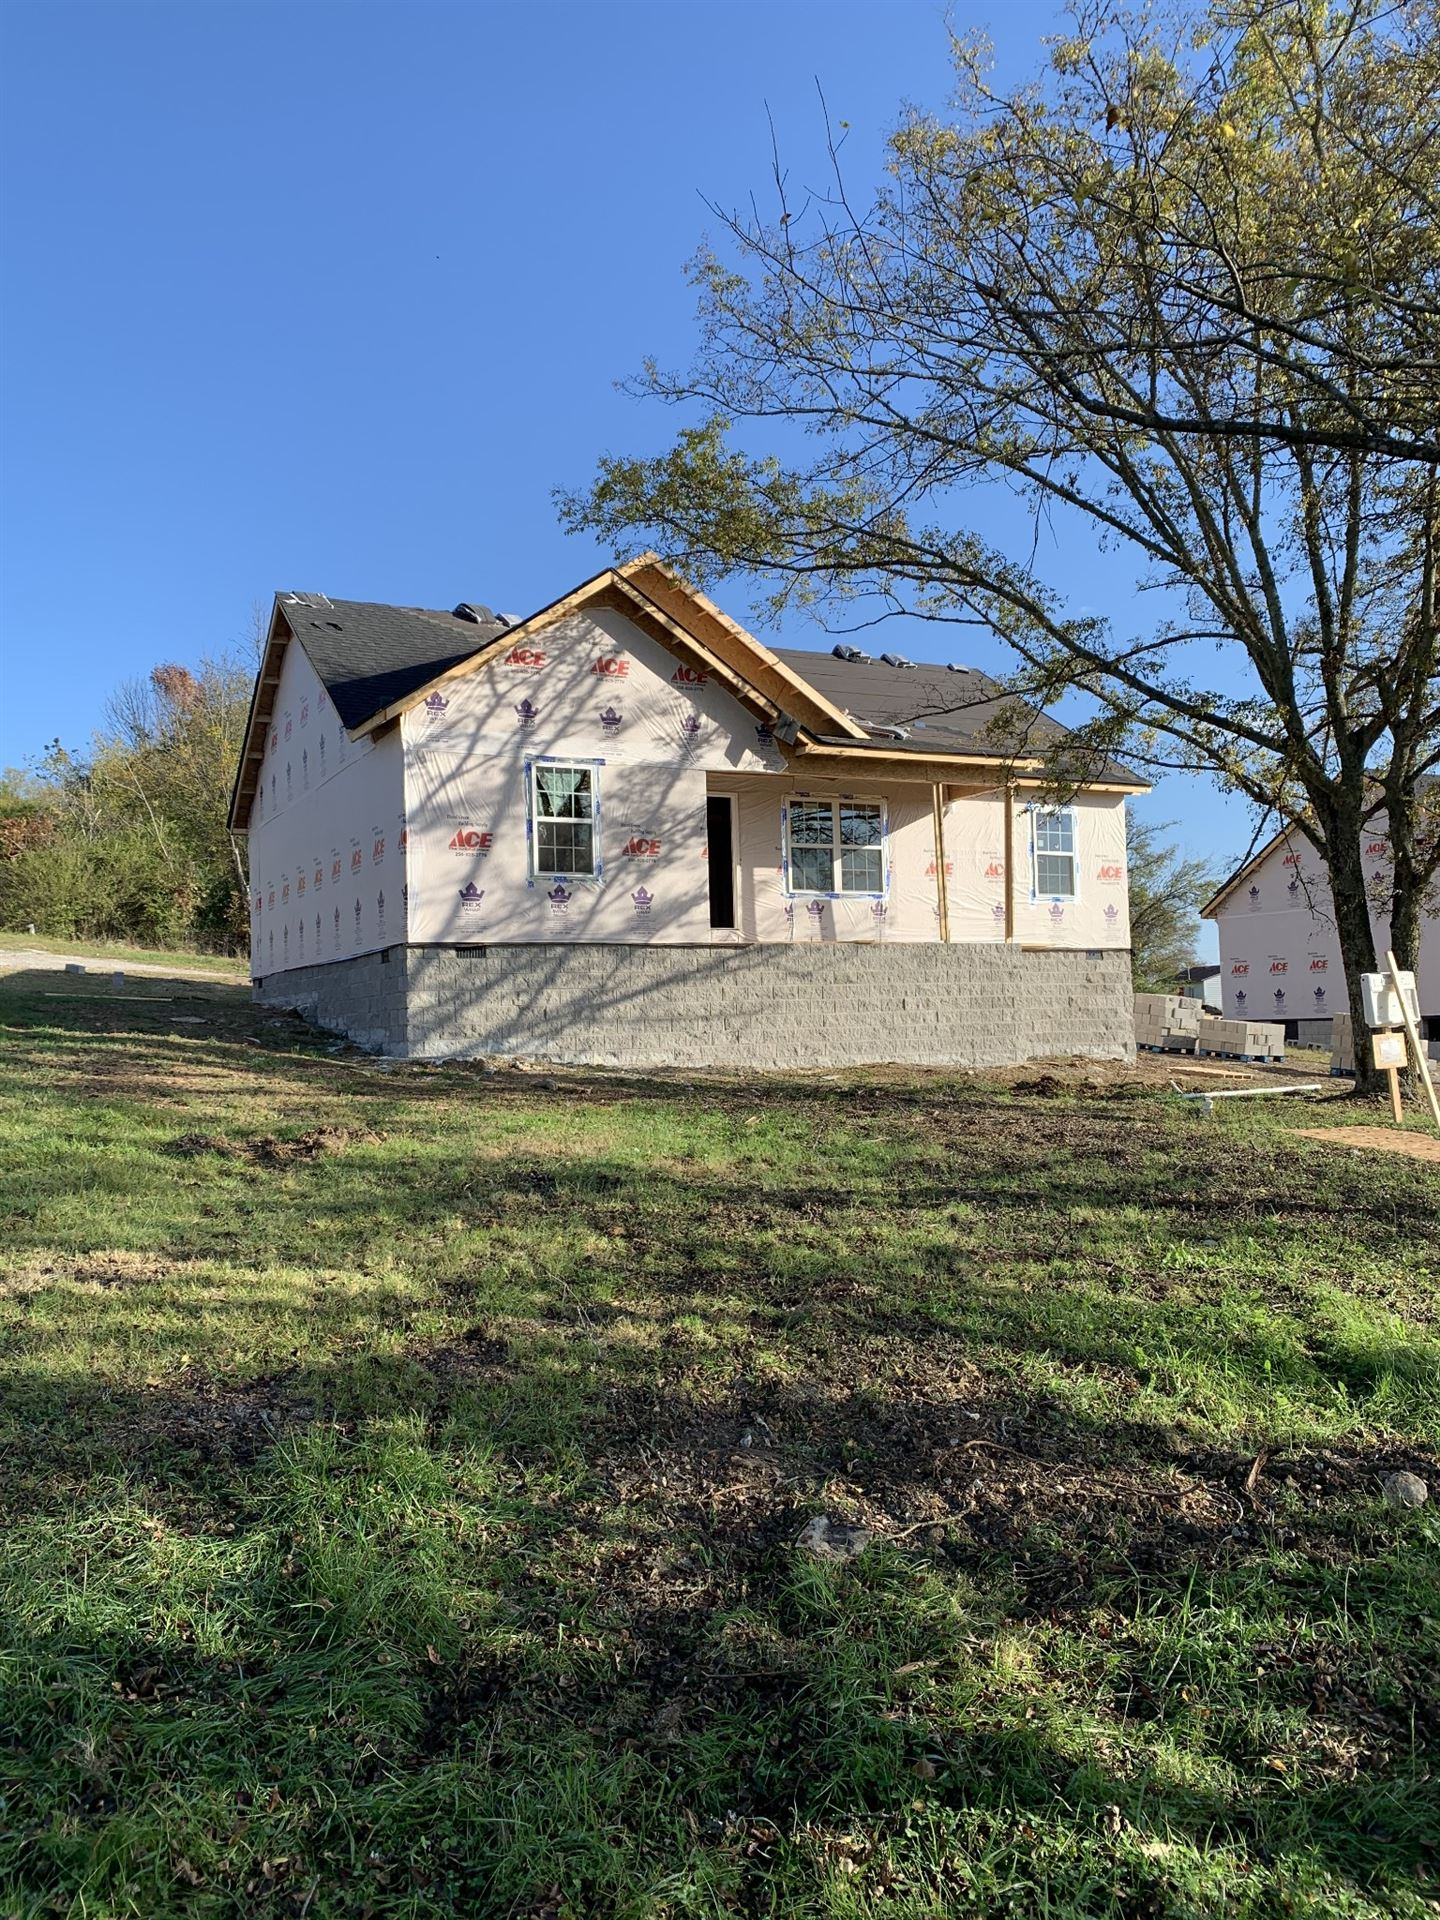 112 Fairview, Cornersville, TN 37047 - MLS#: 2200887